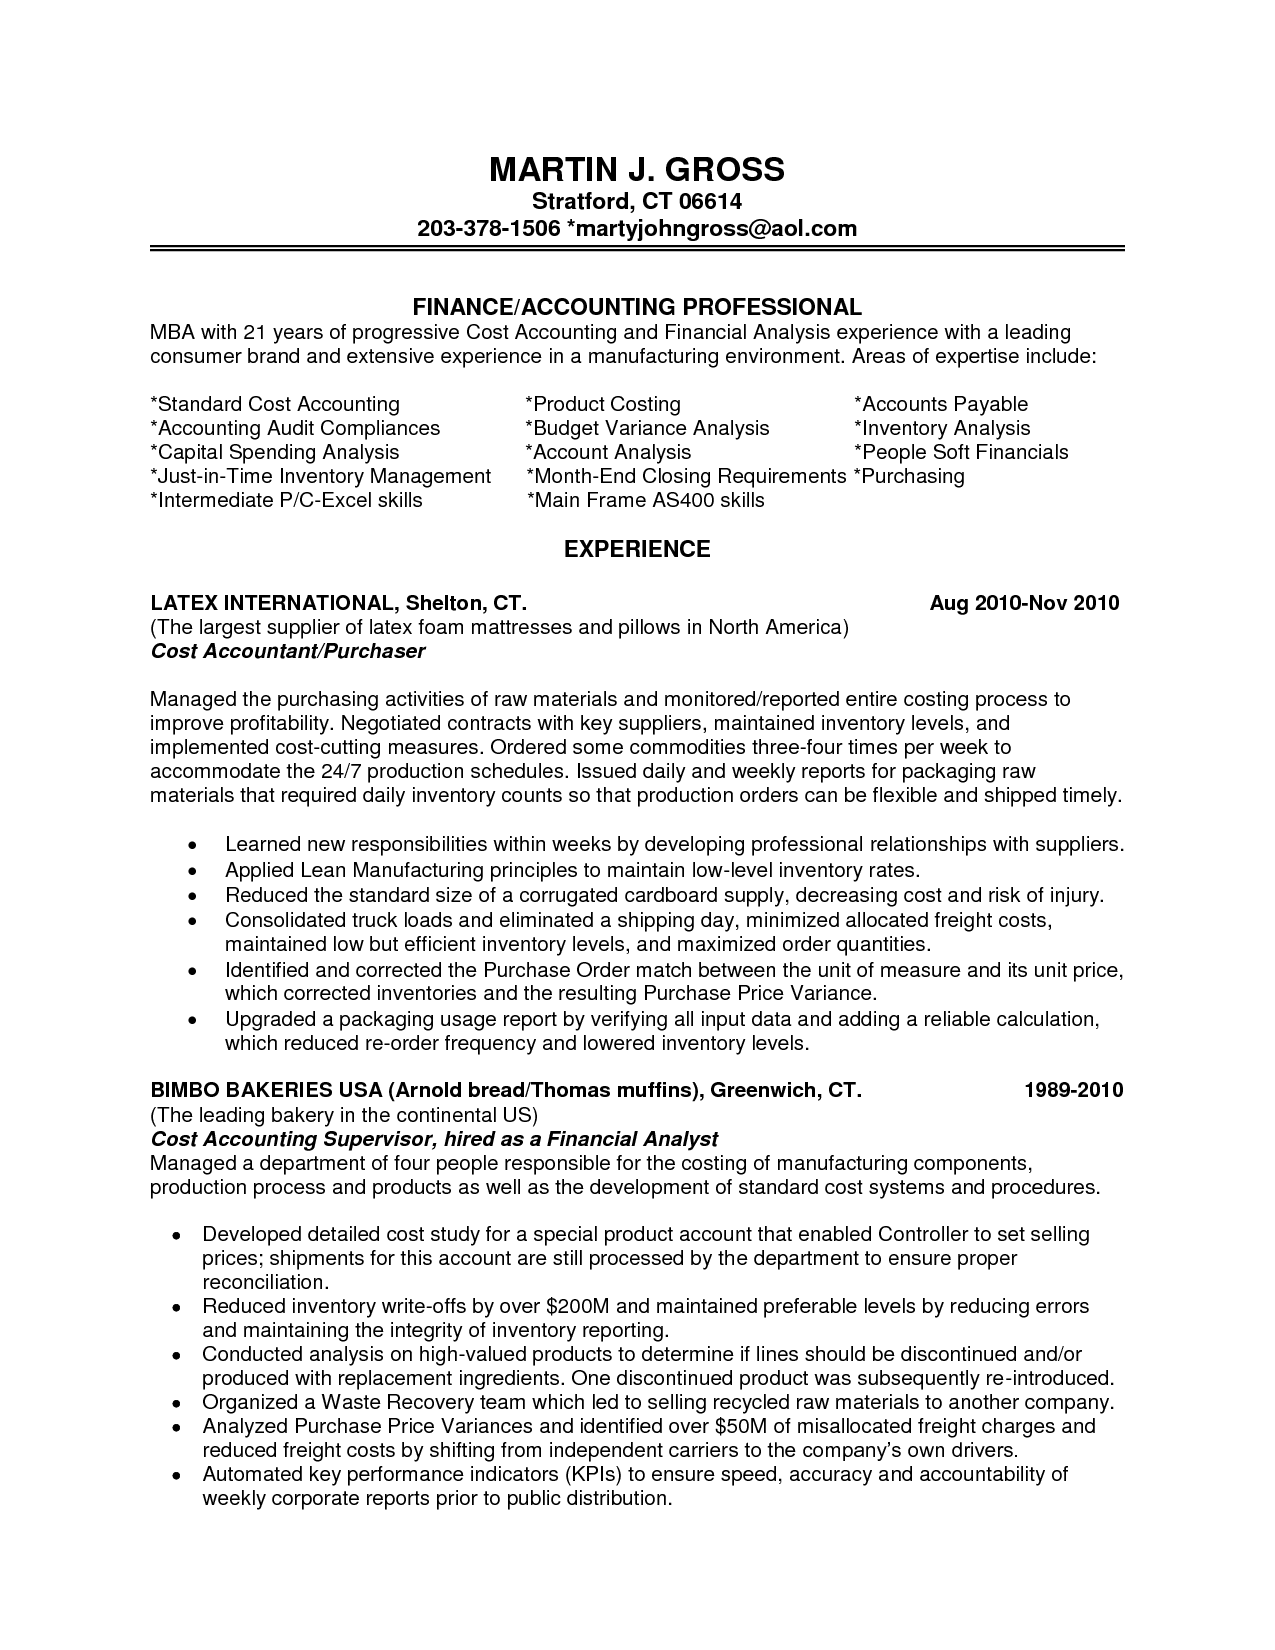 Financial analyst resume example & writing guide · organize and highlight your accomplishments · pass the applicant tracking systems designed to weed out resumes. Pin On Arun